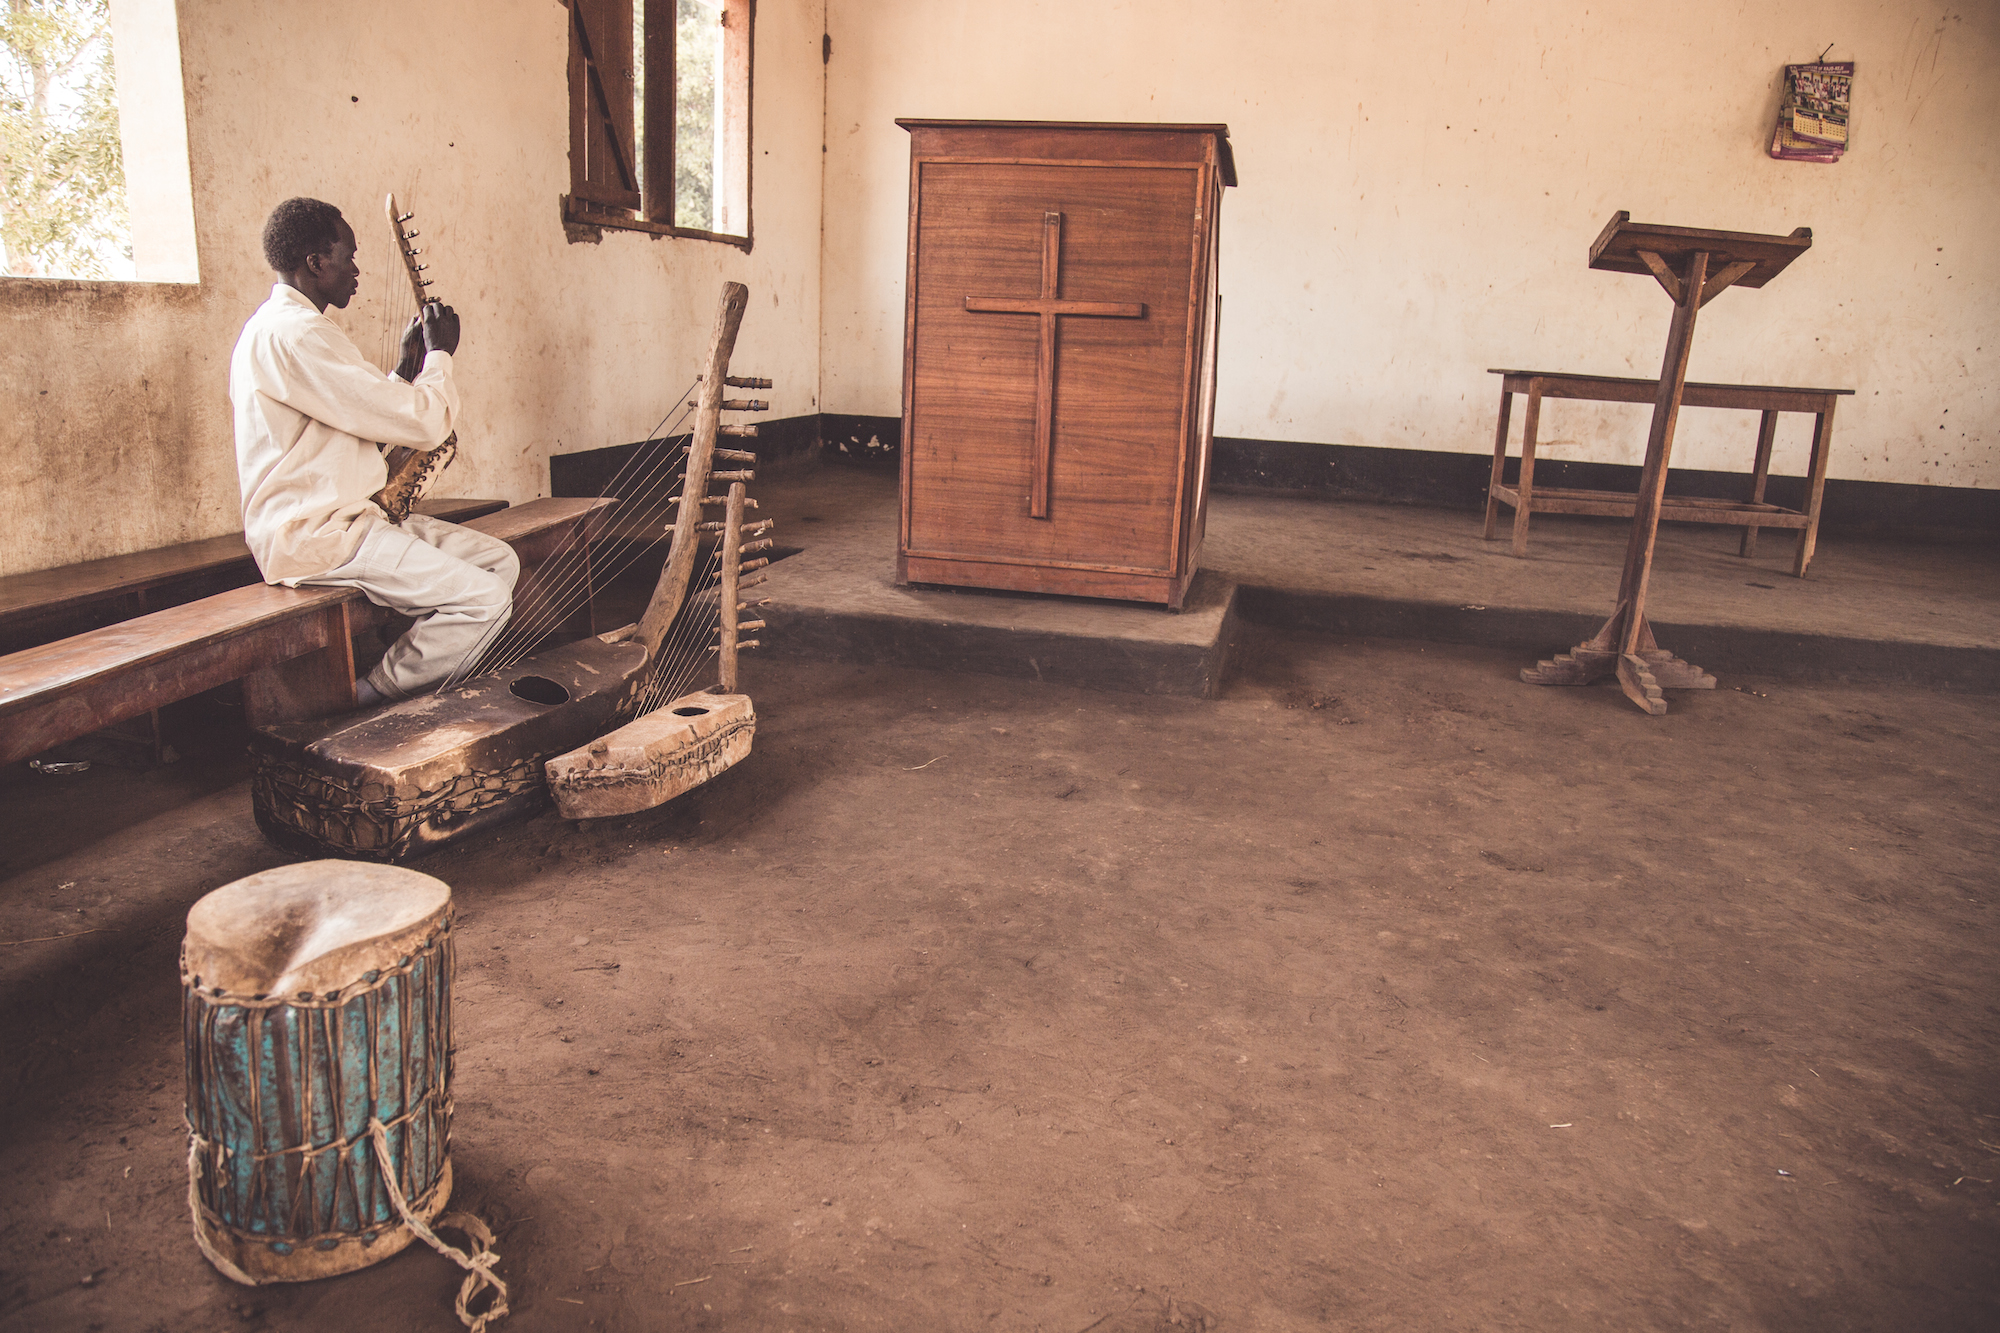 Tuning the local instruments before mass at church in Kala.